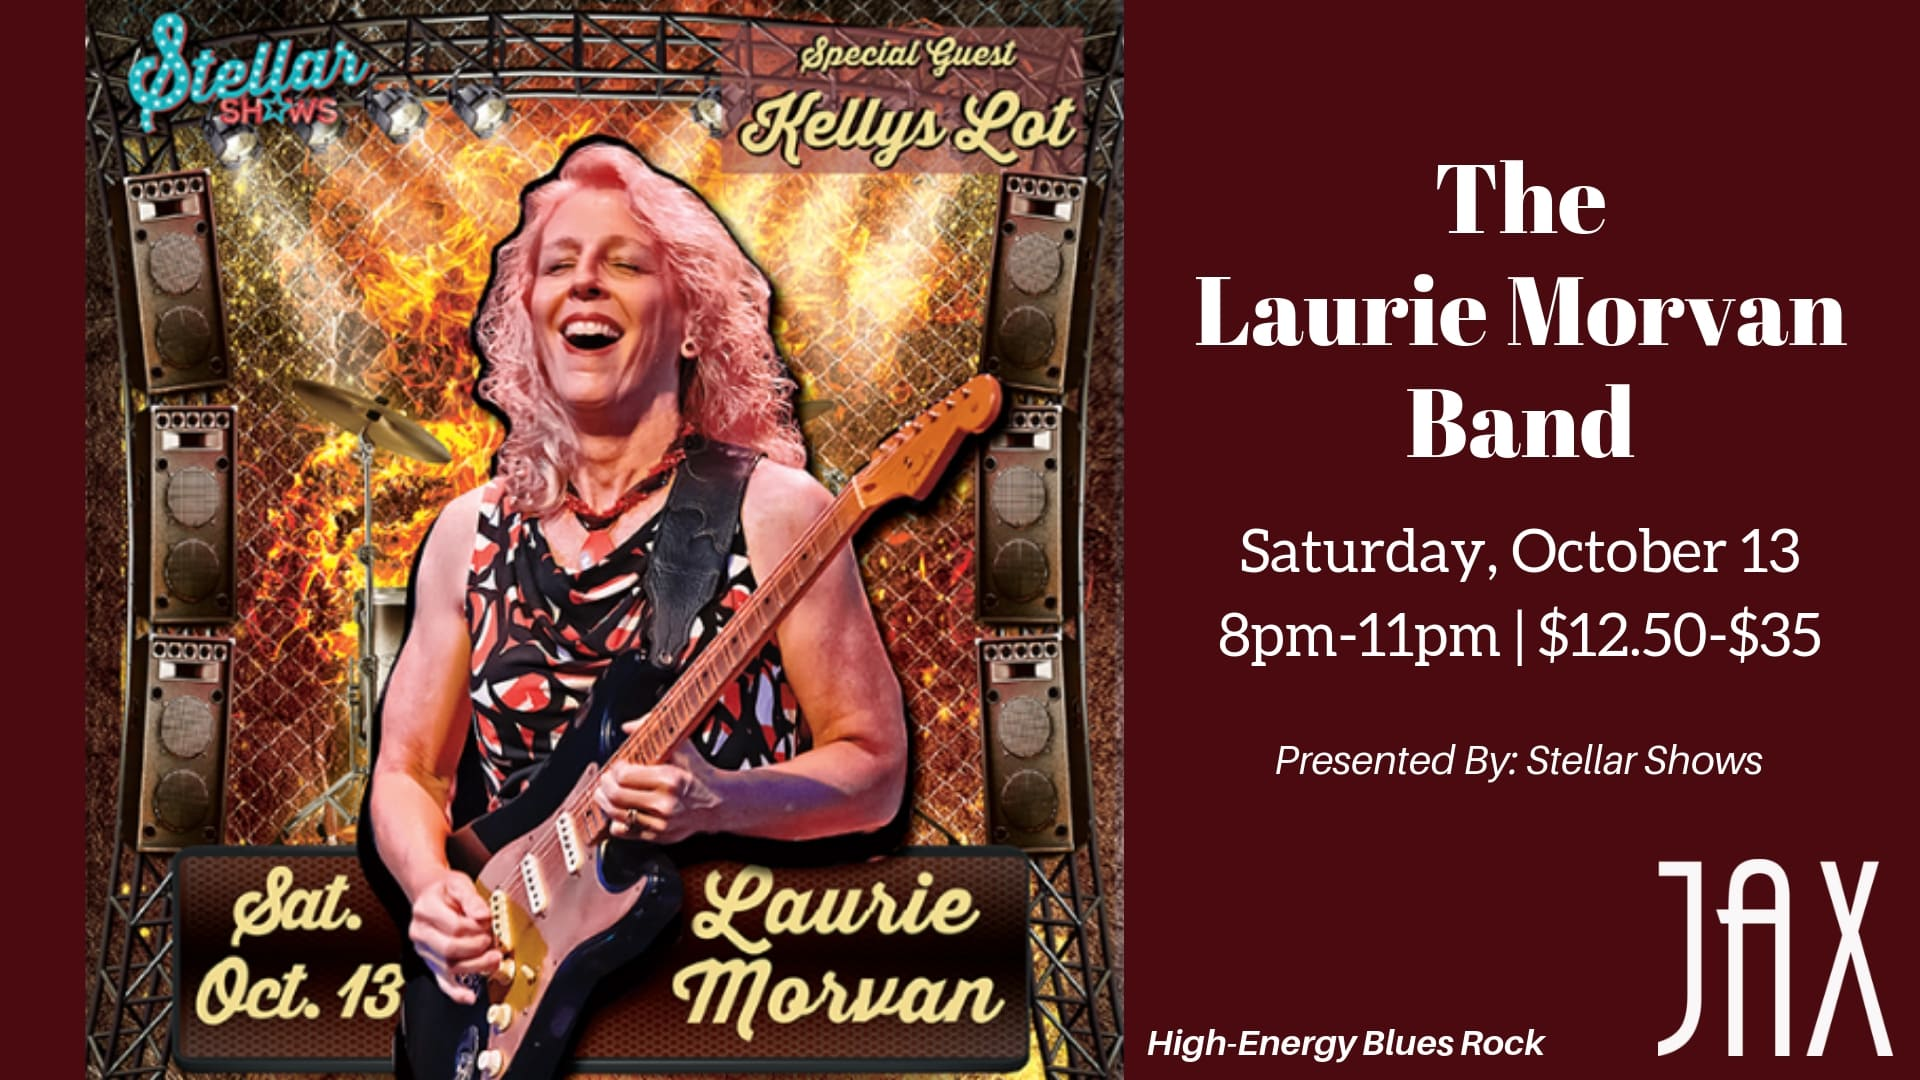 October 13 | THE LAURIE MORVAN BAND - Presented By StellarShows